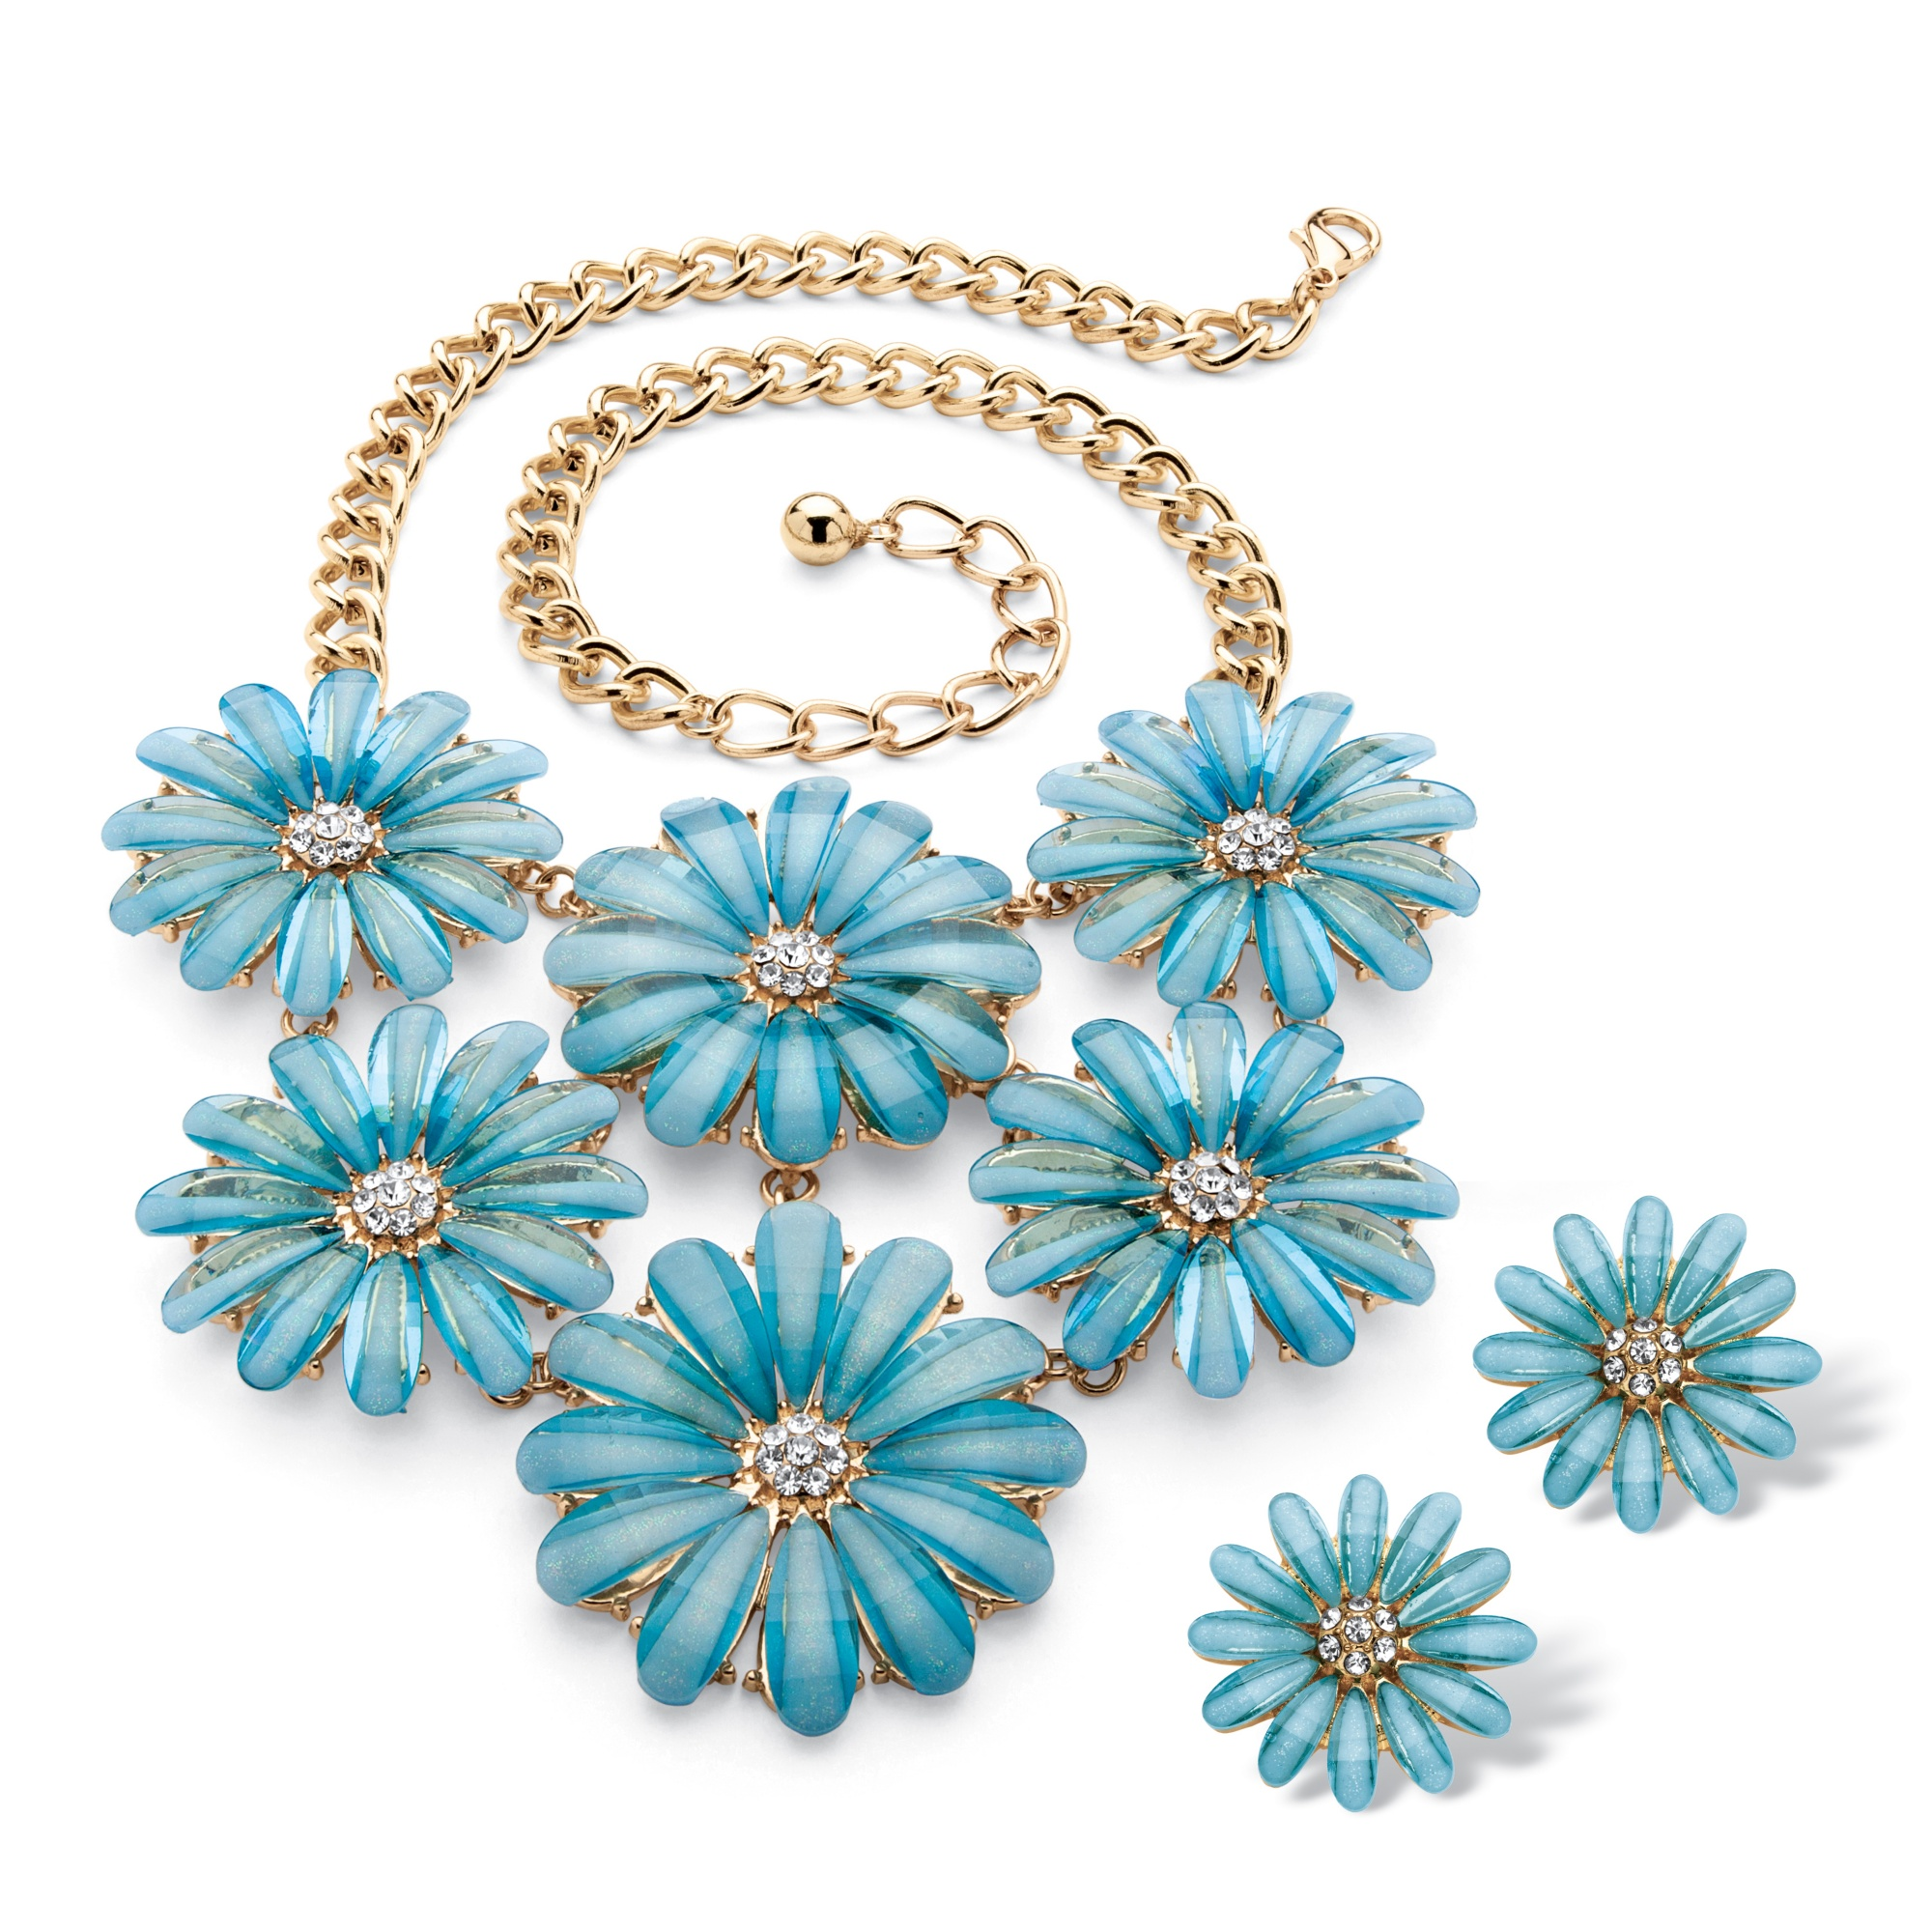 PalmBeach Jewelry Blue Lucite and Crystal Daisy Necklace and Earrings Set in Gold Tone PartNumber: 00401081000P KsnValue: 9366935 MfgPartNumber: 55755